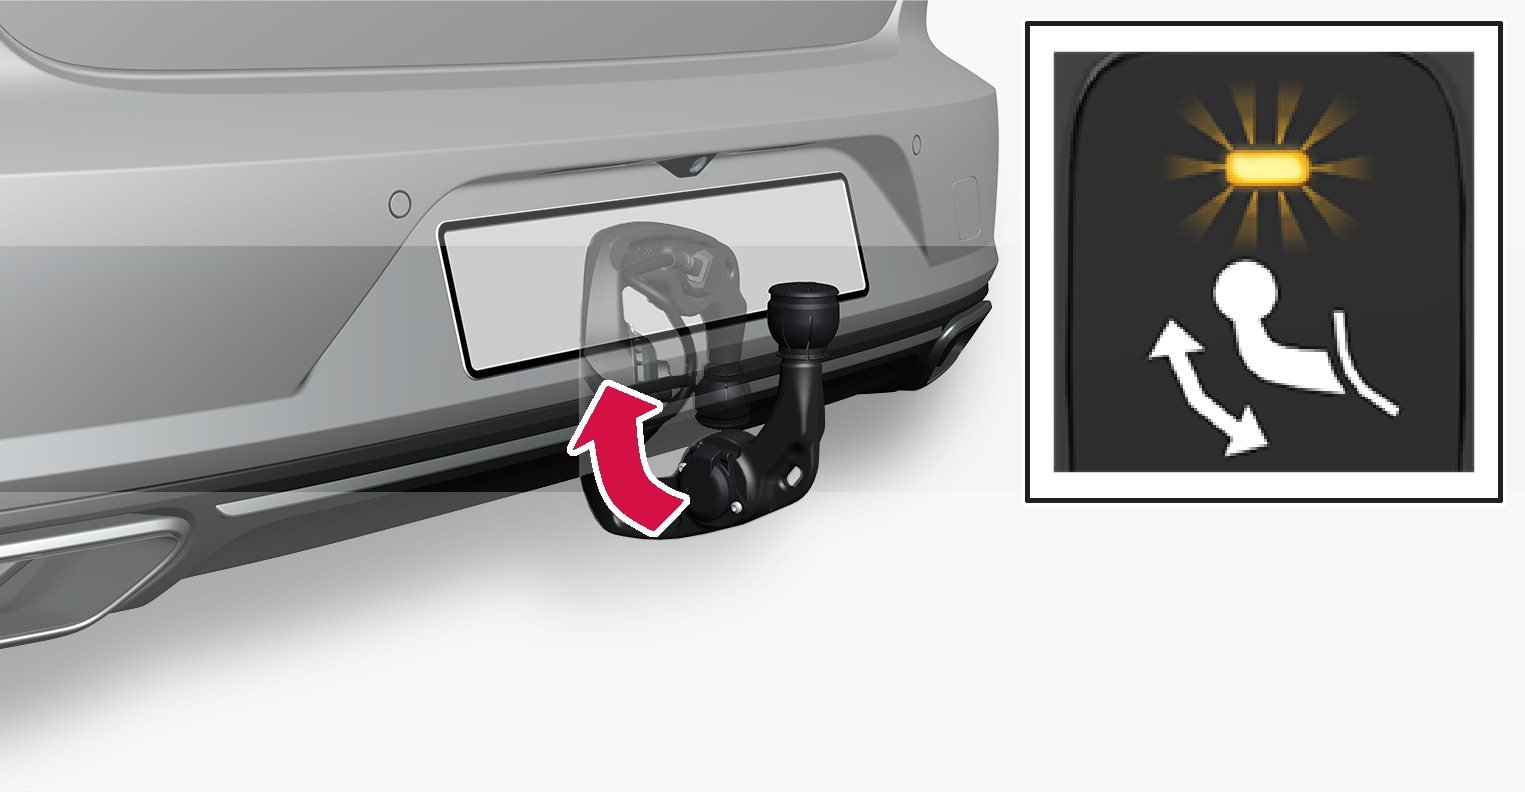 P5-1617-S90-V90-swivable towbar and switch fold in step 1